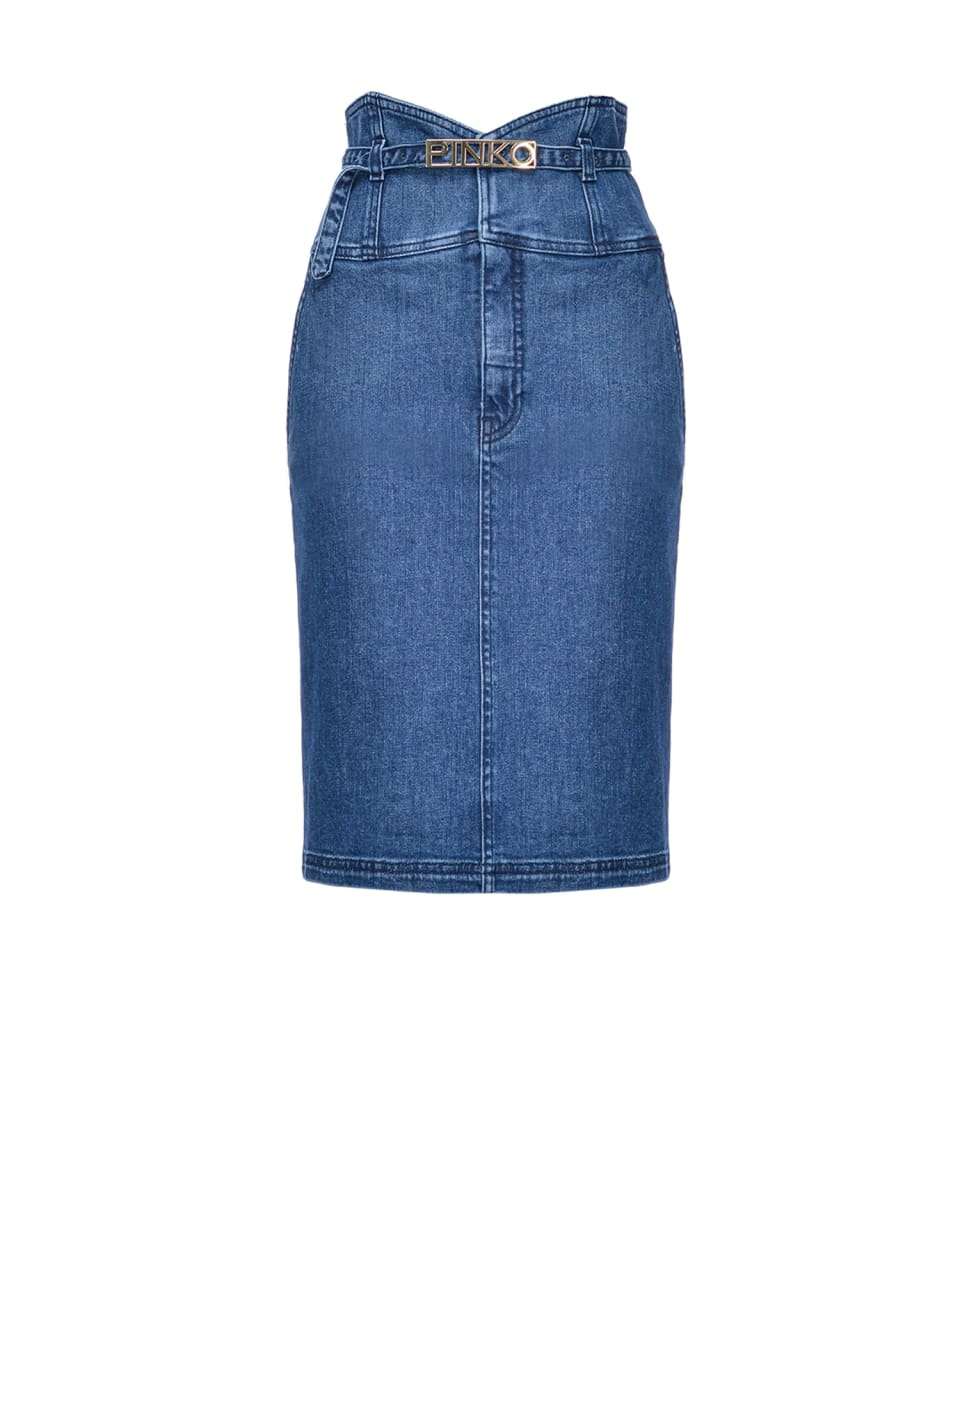 Midi-length bustier skirt in comfort denim - Pinko